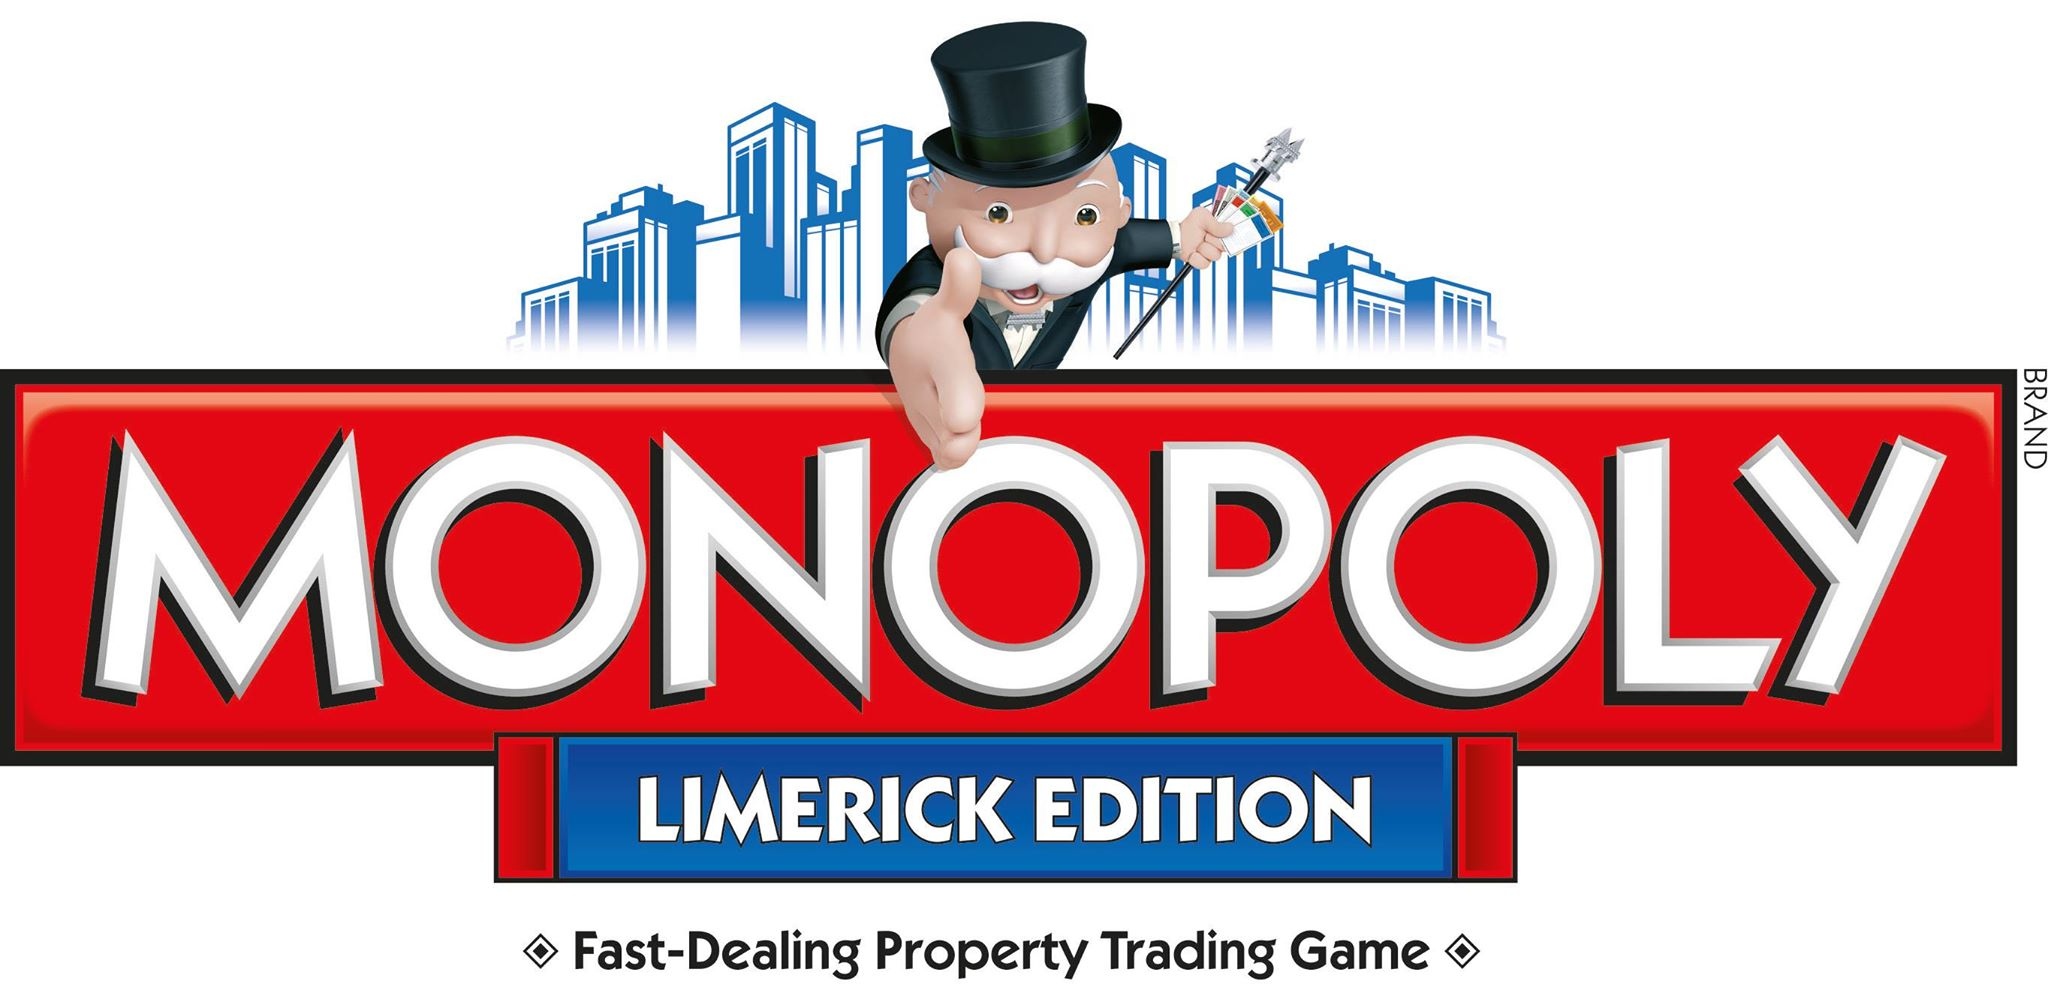 Limerick Charity Getting Monopoly